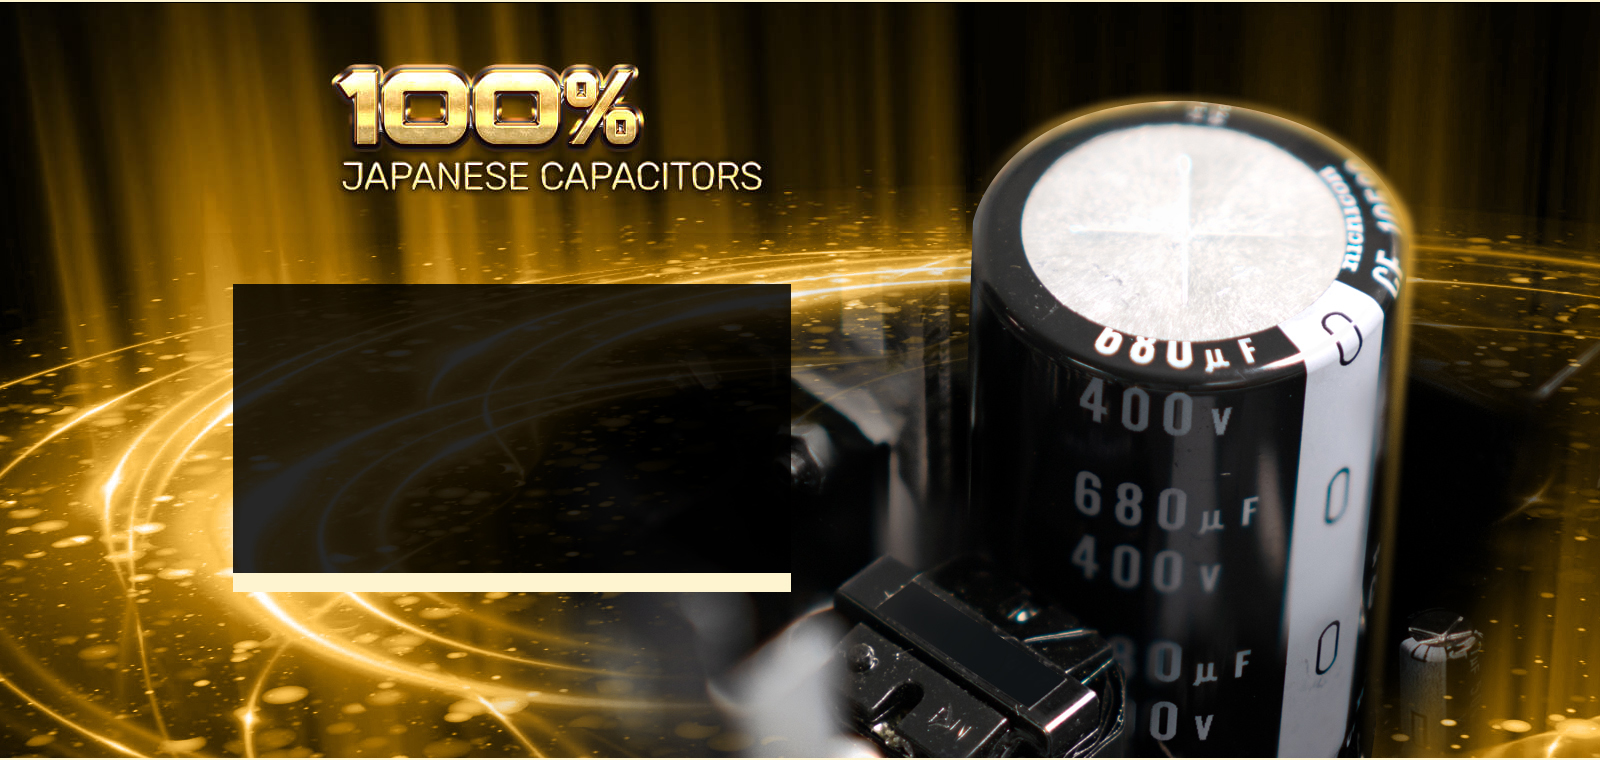 Japanese Capacitor close-up